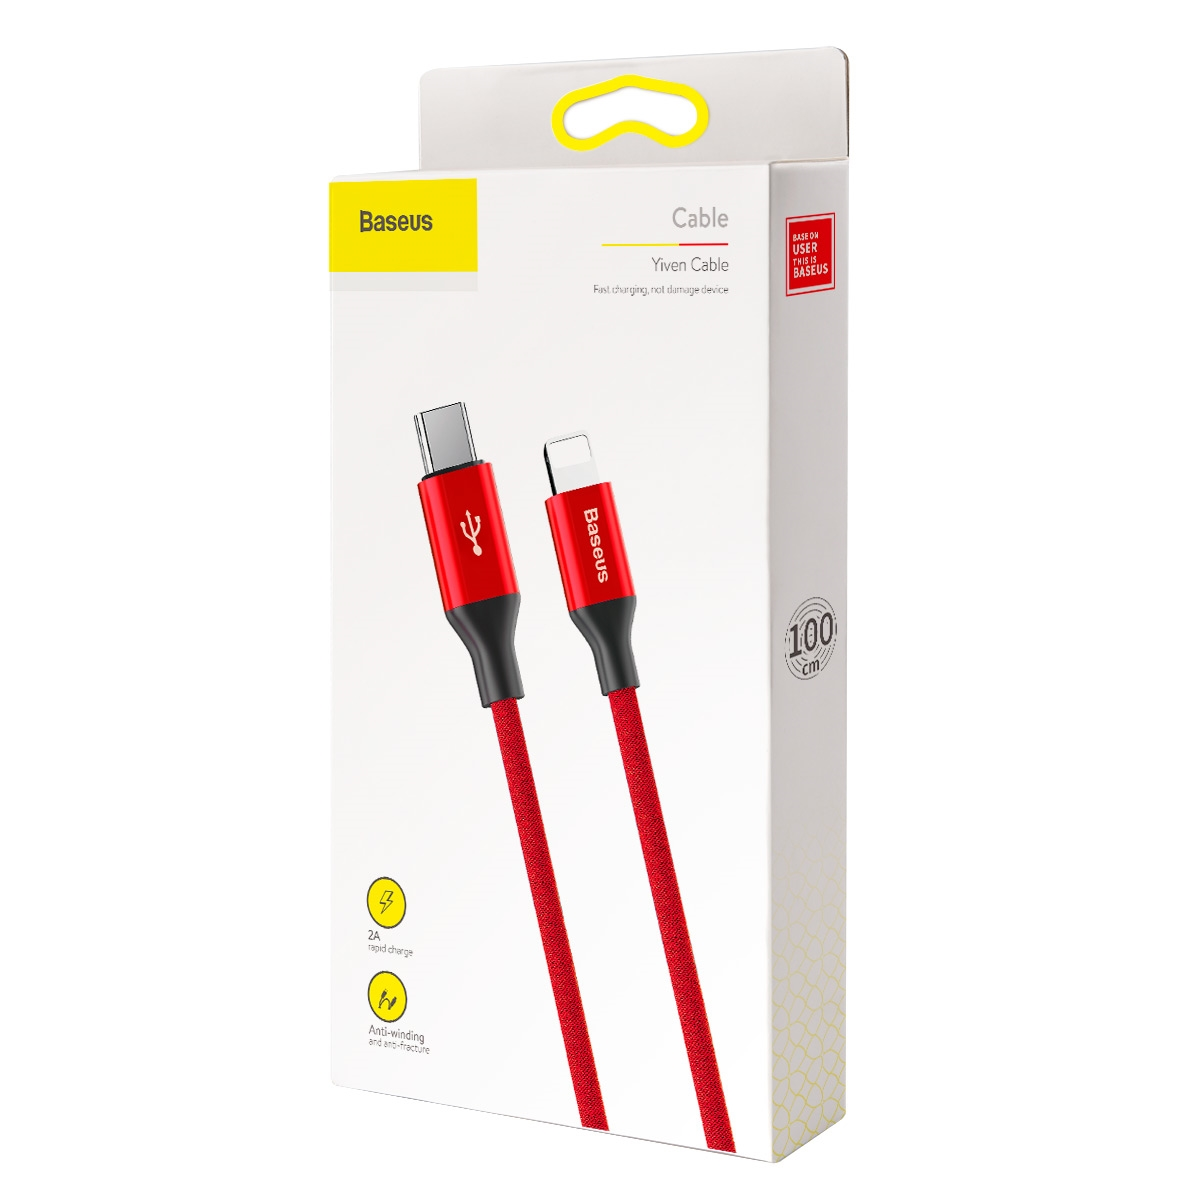 Baseus Yiven Series Type-C to iP Cable 2A 1m Red CATLYW-C09